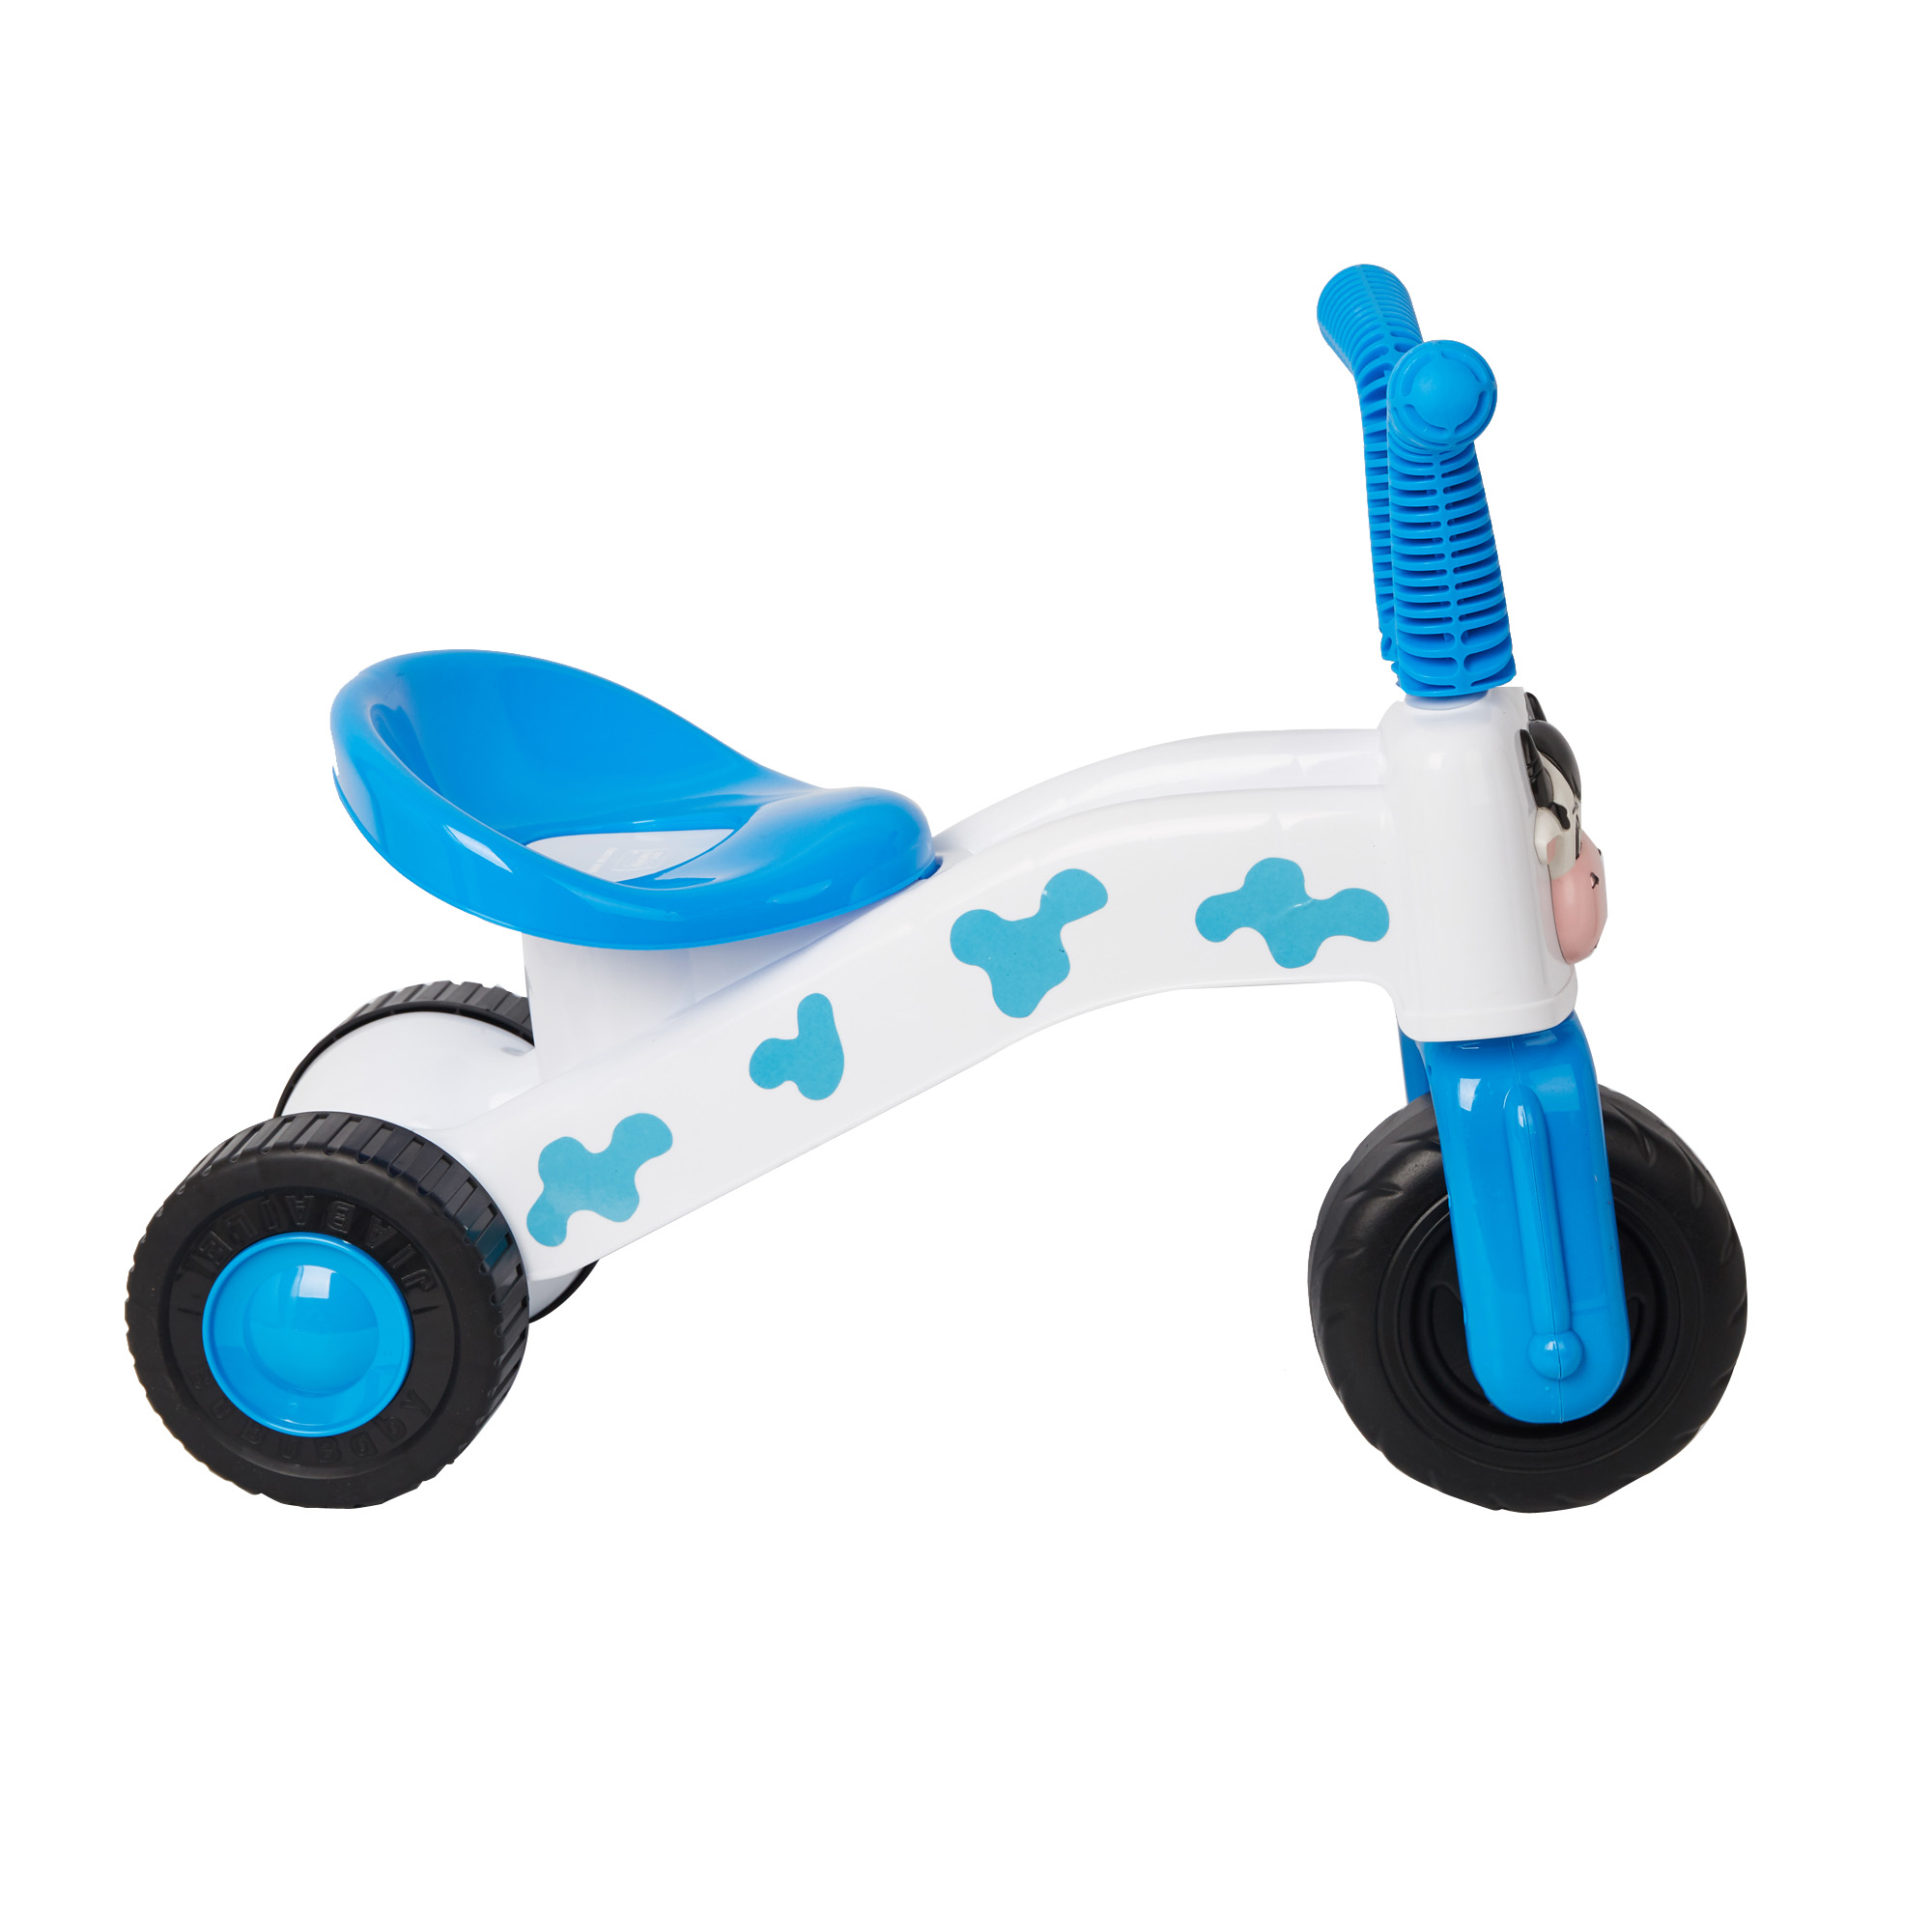 Buffalo 12 Inch Balance Bike Toddler No Pedals For 1 – 5 Year Old 1